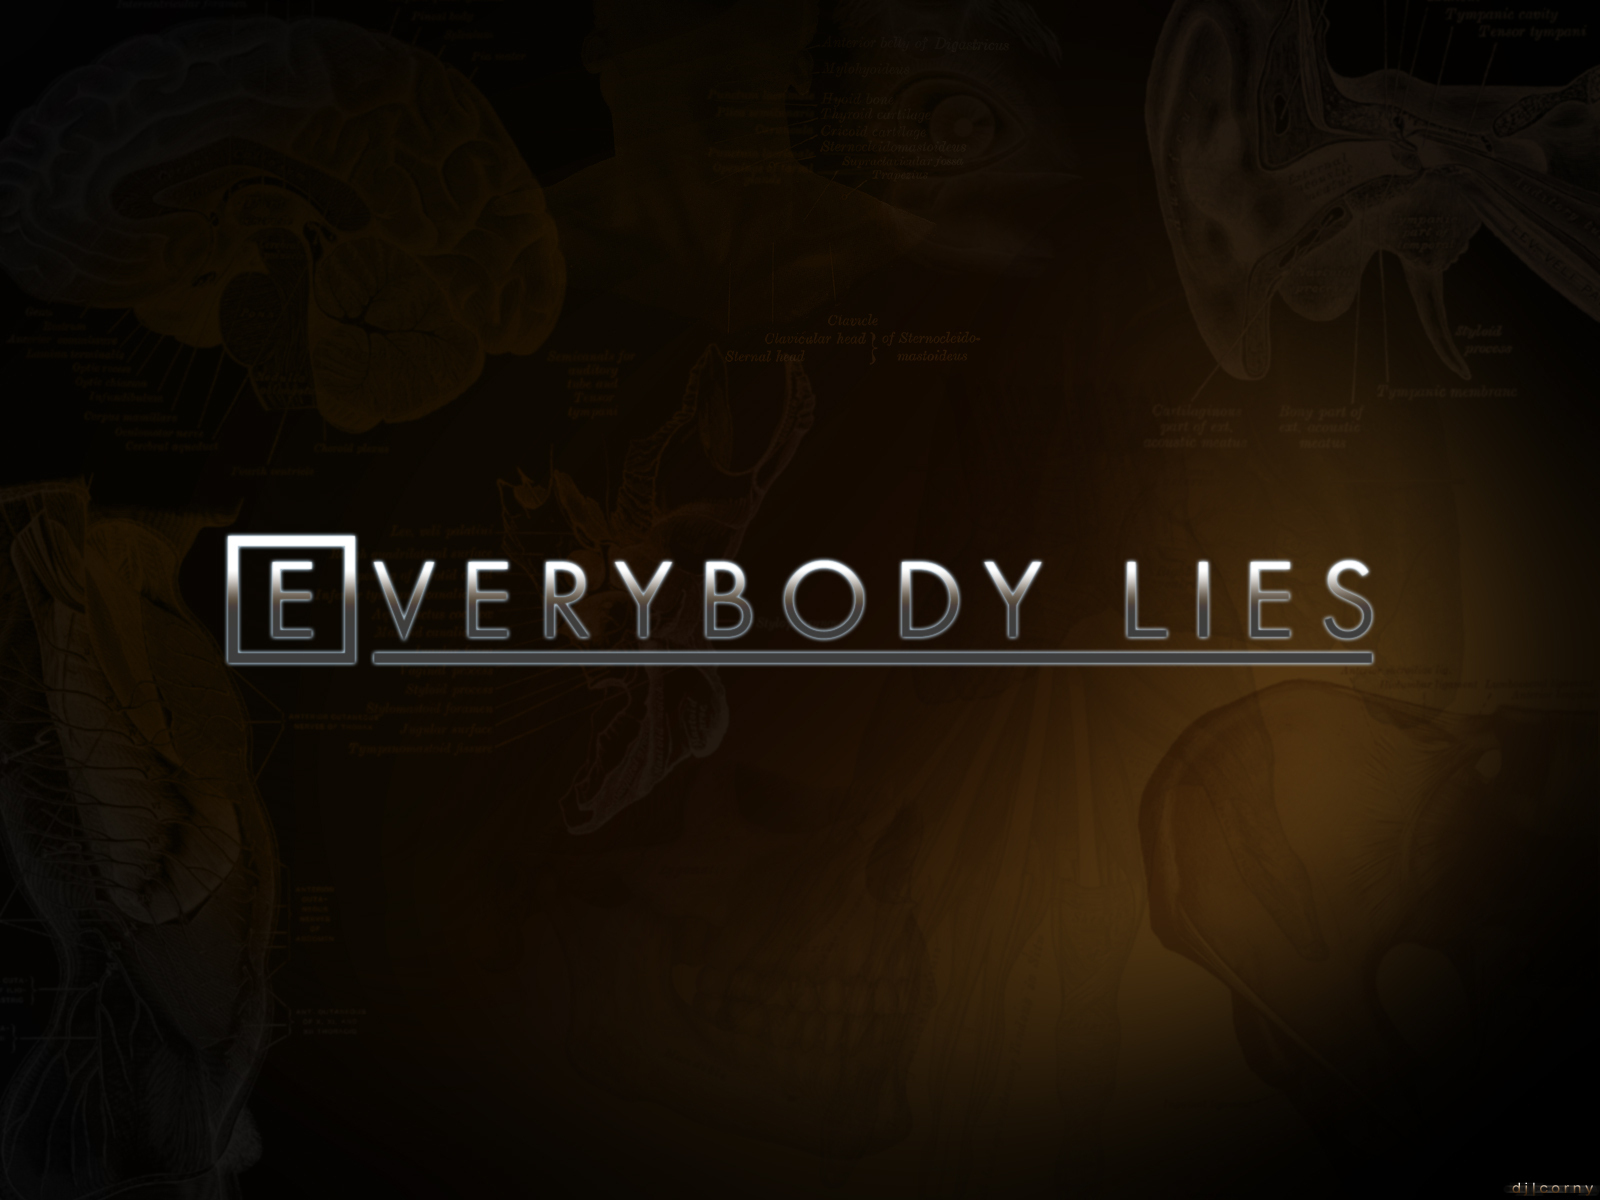 Everybody-Lies-house-md-1395803-1600-1200.jpg